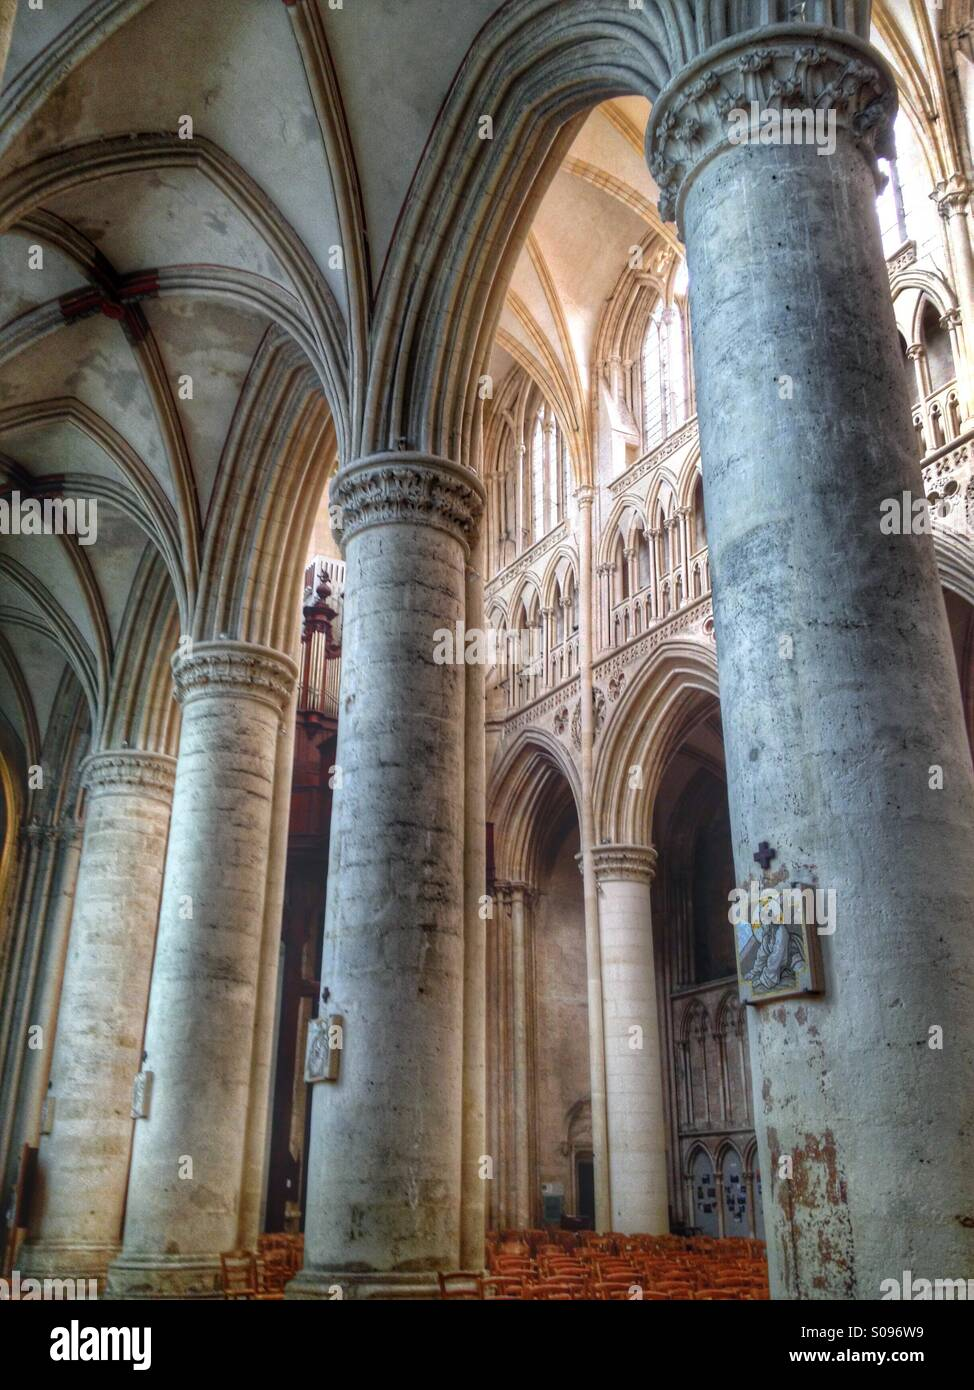 Interior with columns. Sees Cathedral, Orne, Normandy, France - Stock Image